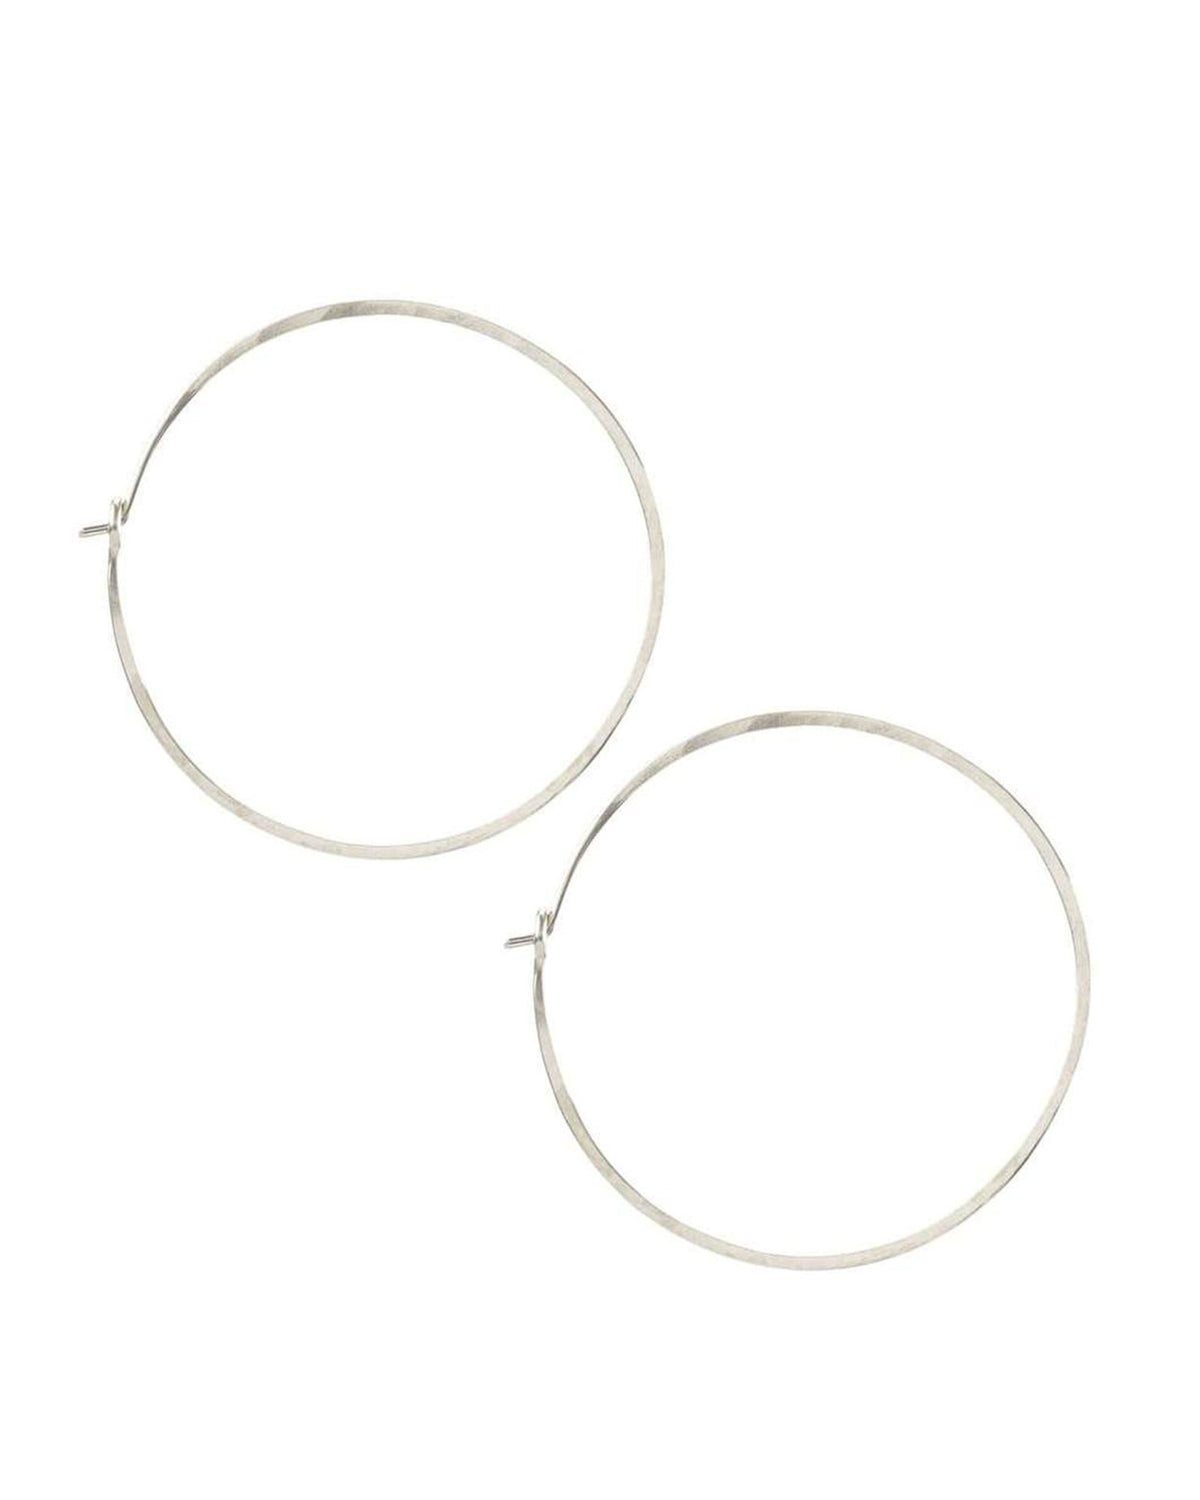 Kris Nations Jewelry O/S / Silver Medium Simple Hoops in Silver